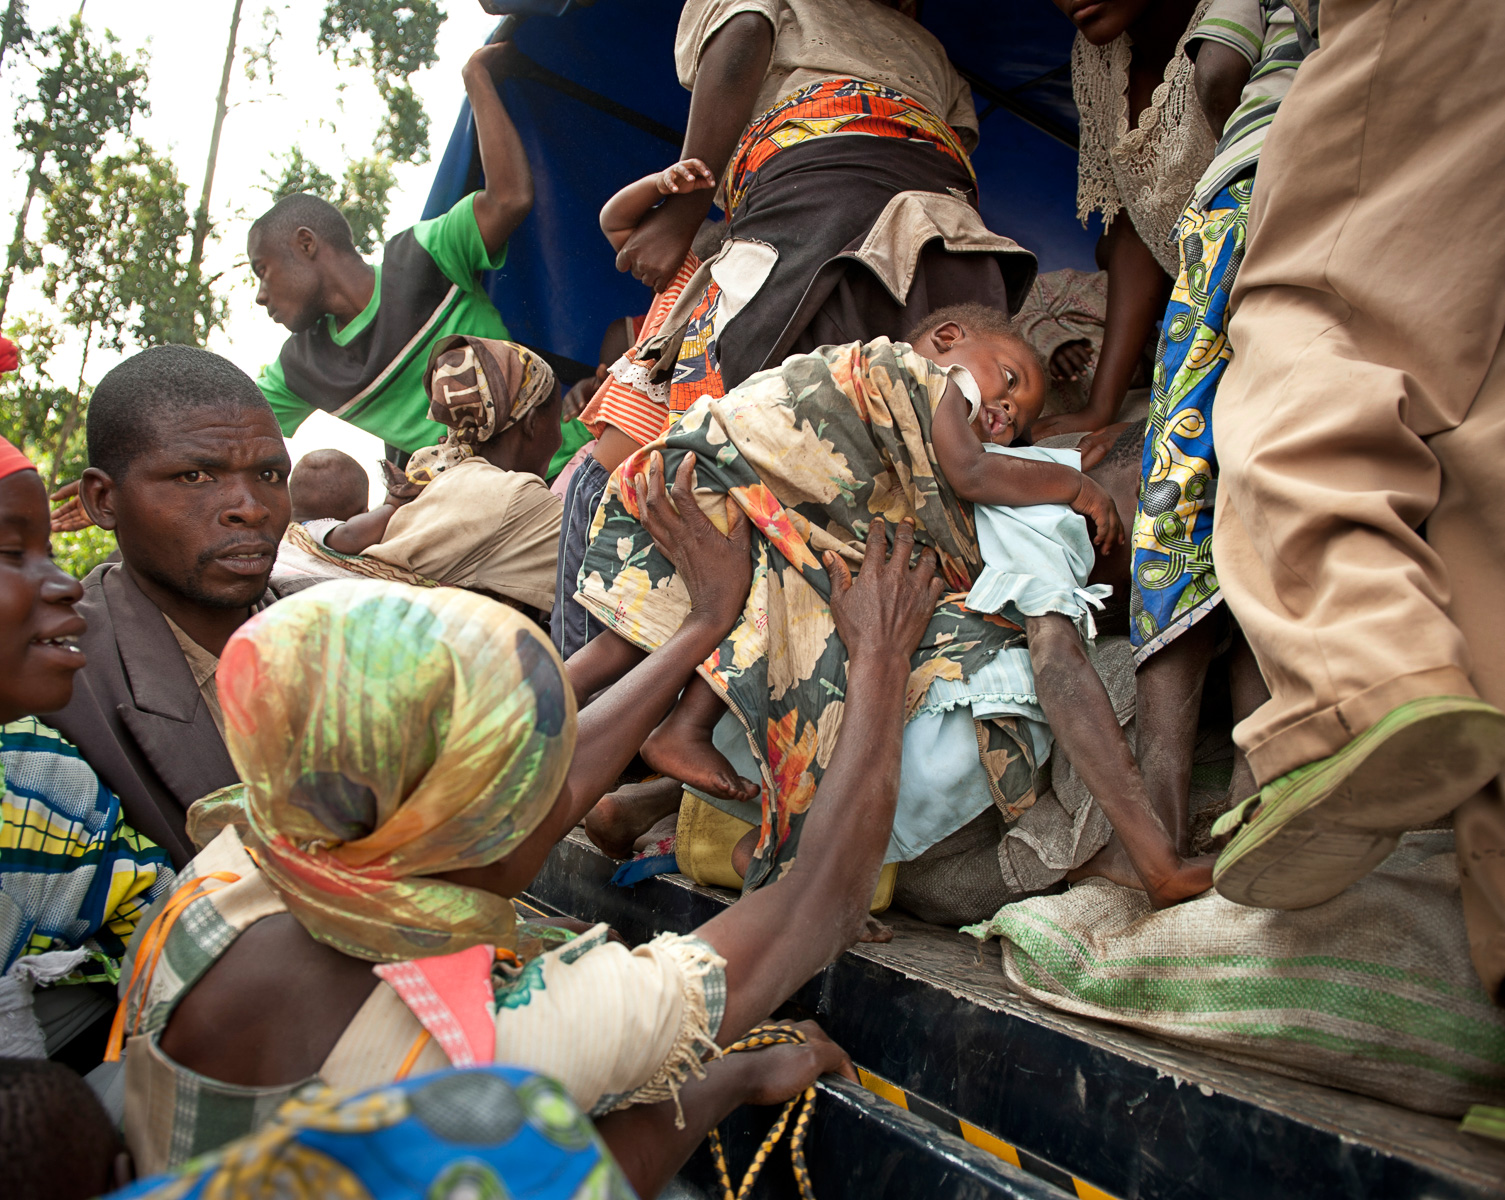 Refugees from the Democratic Republic of Congo flee the civil war with the rebel group M23. They are desperate to get on a Ugandan police truck at the border town of Bunagana that will carry them the remaining distance to the Nyakabanda transit site in Kisoro, Uganda. Most of these refugees will be resettled at Rwamwanja, Uganda after the UNHCR has registered them.